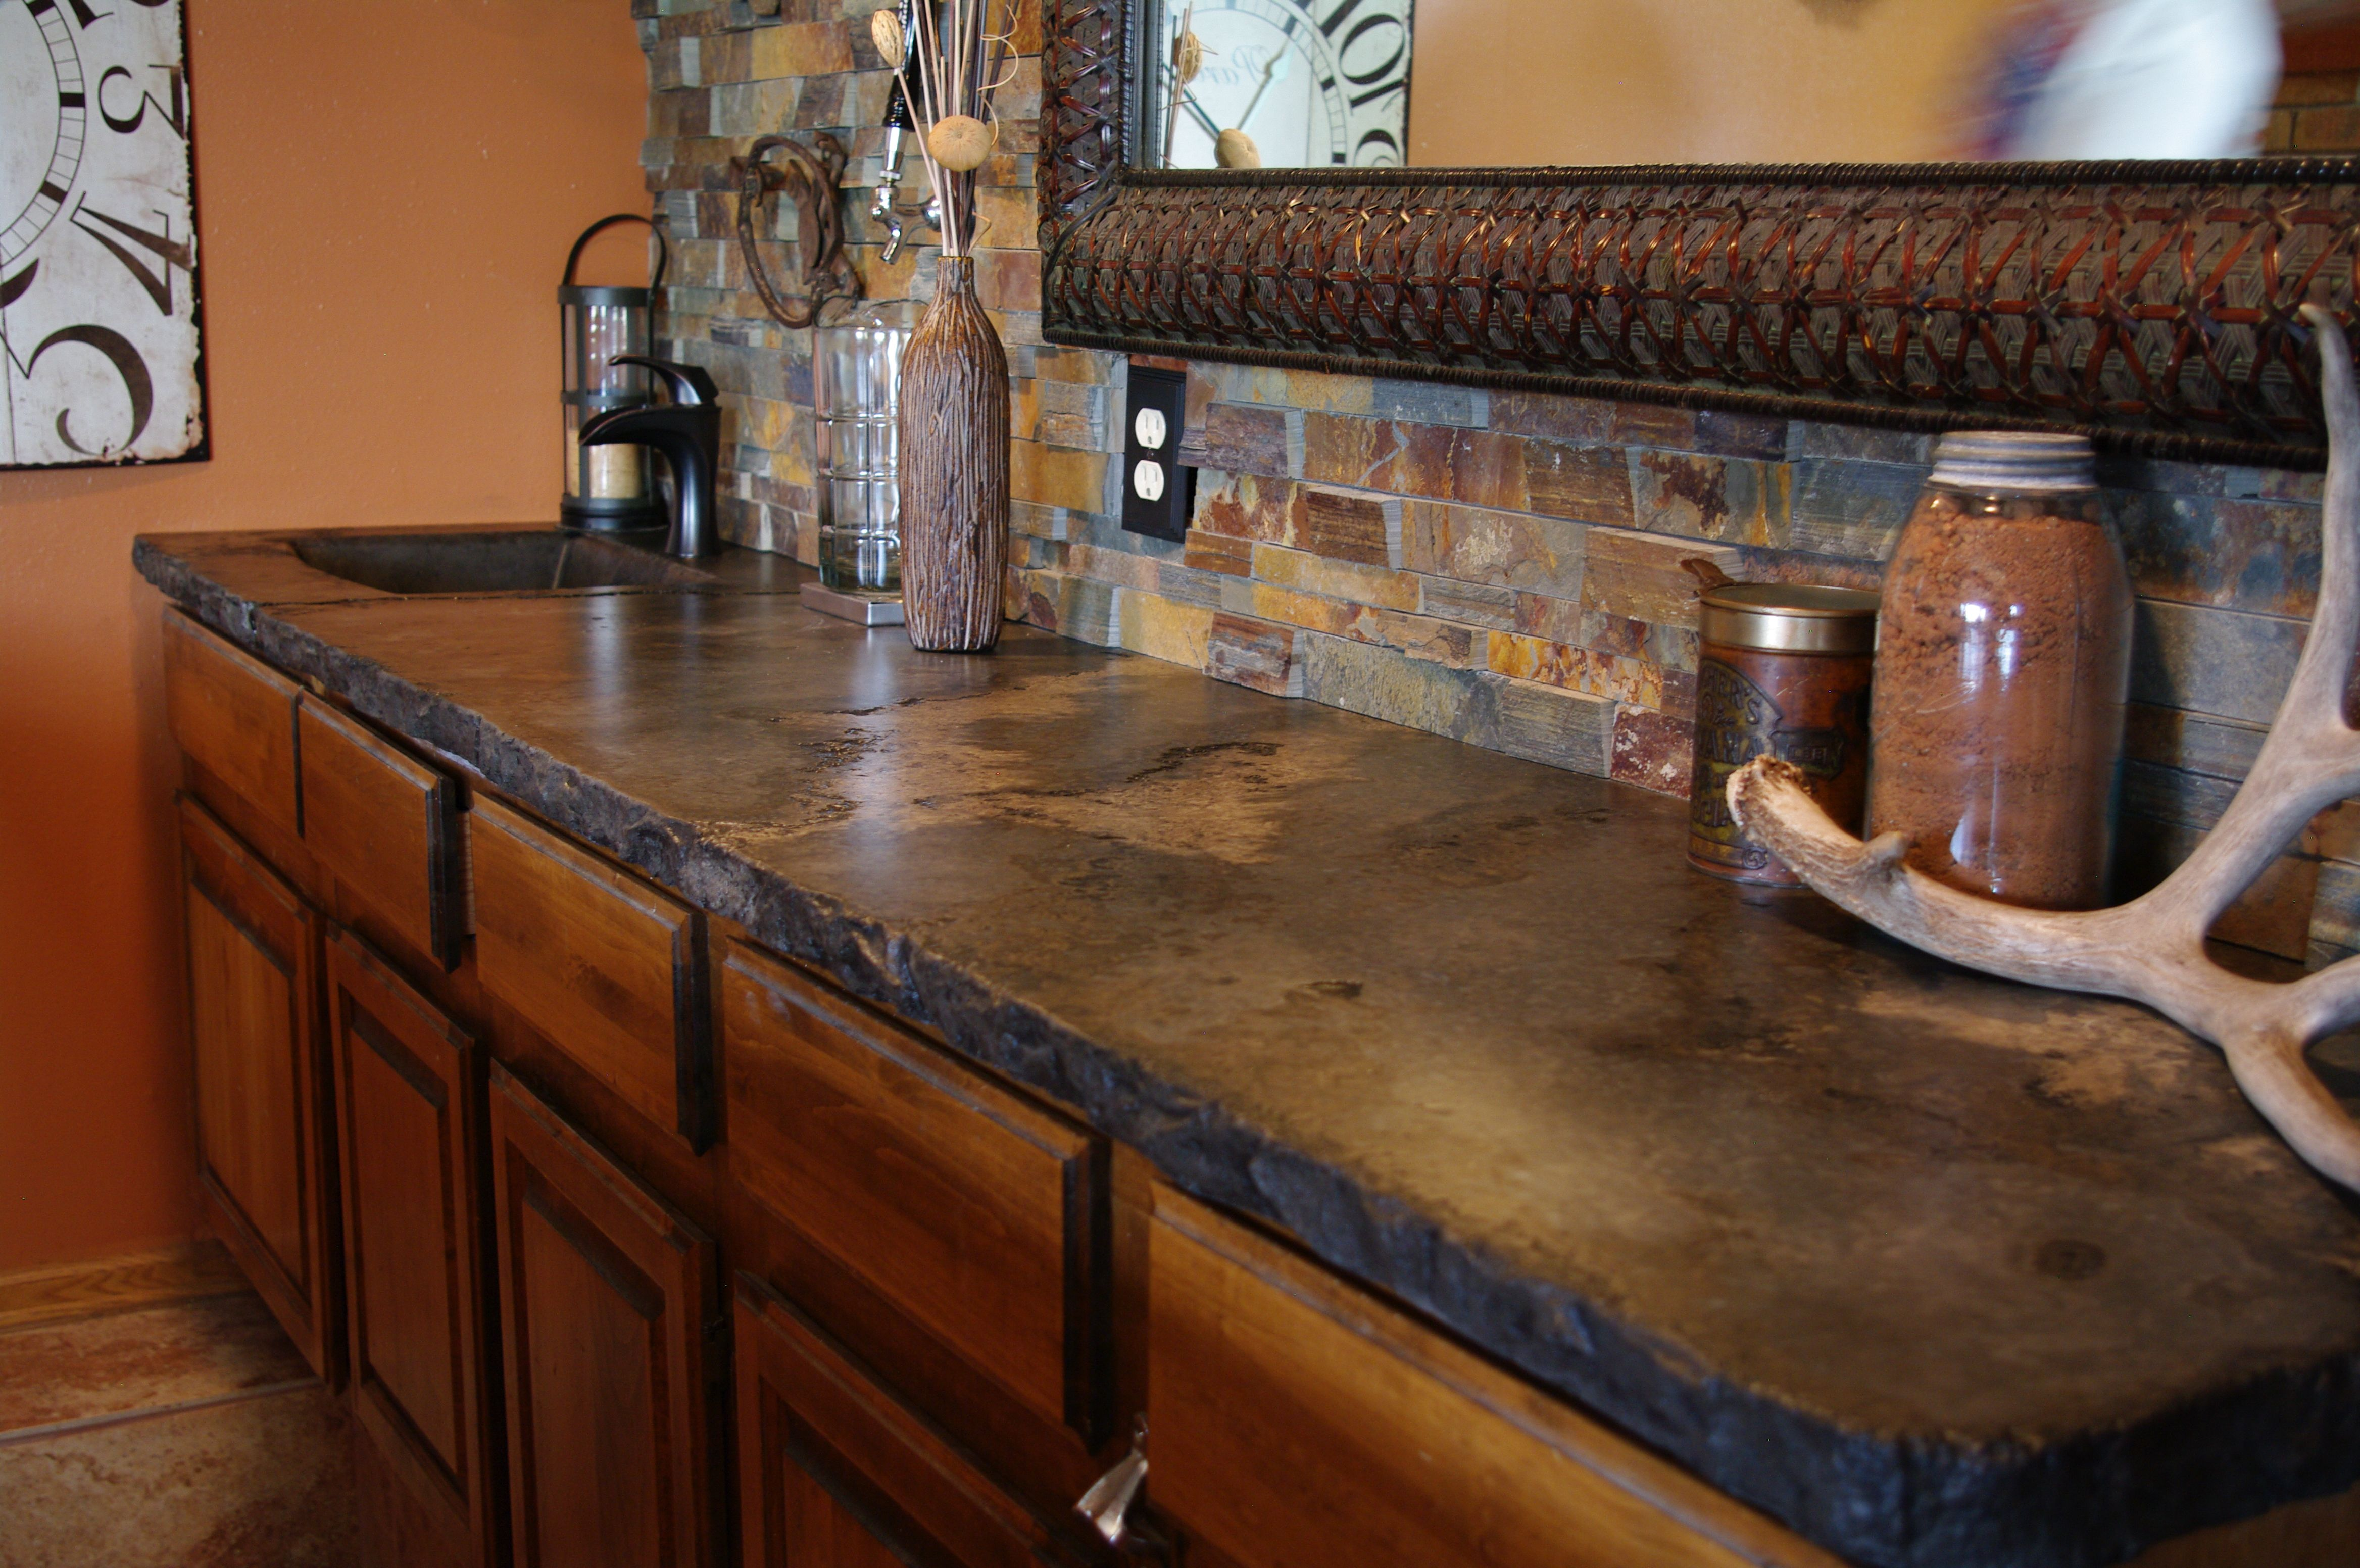 How To Waterproof Wood Countertops Dark Cabin Concrete Bar Top With Integral Sink Concrete